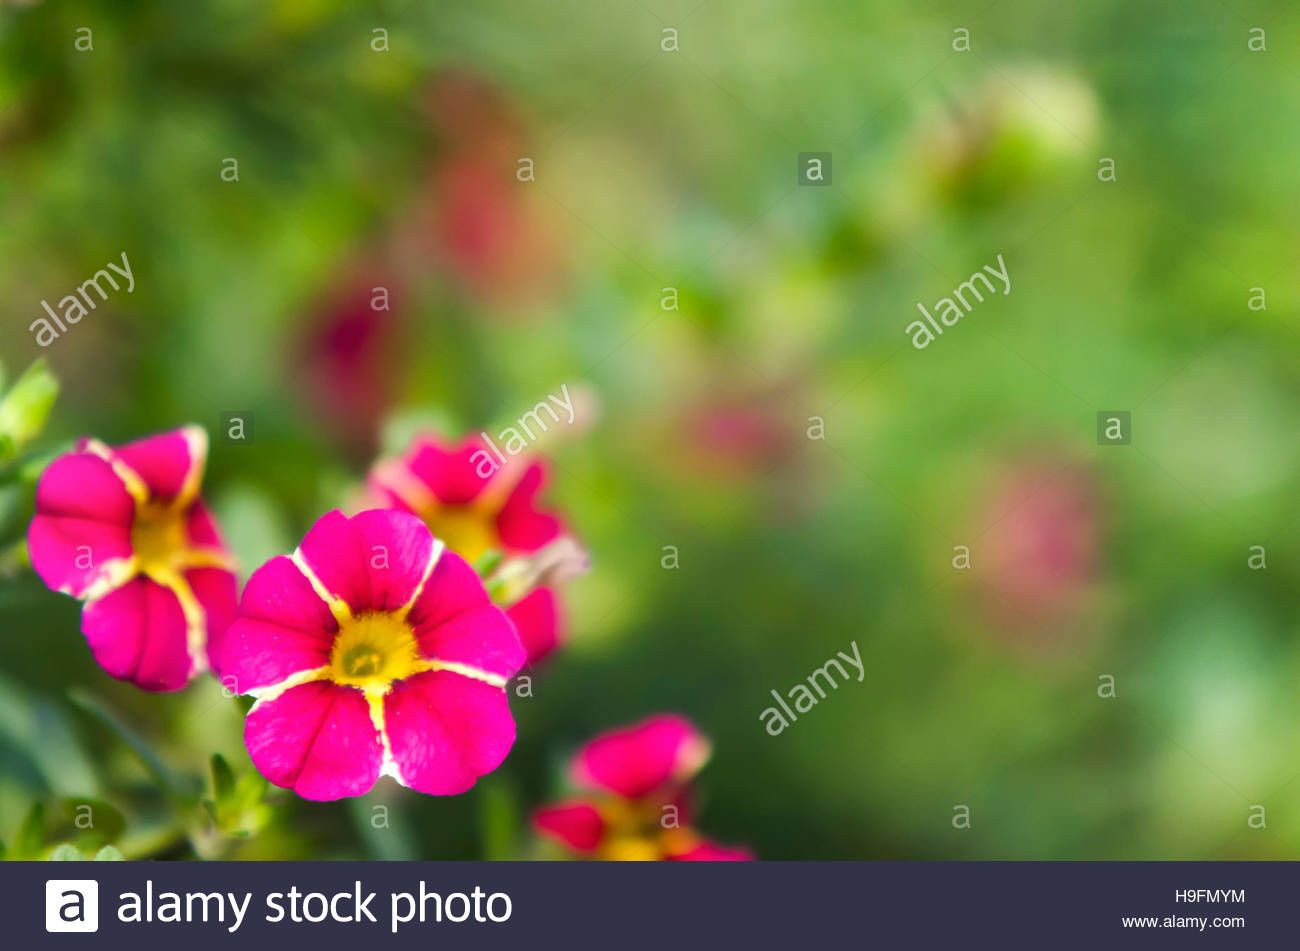 Download this stock image pink and green floral background hfmym